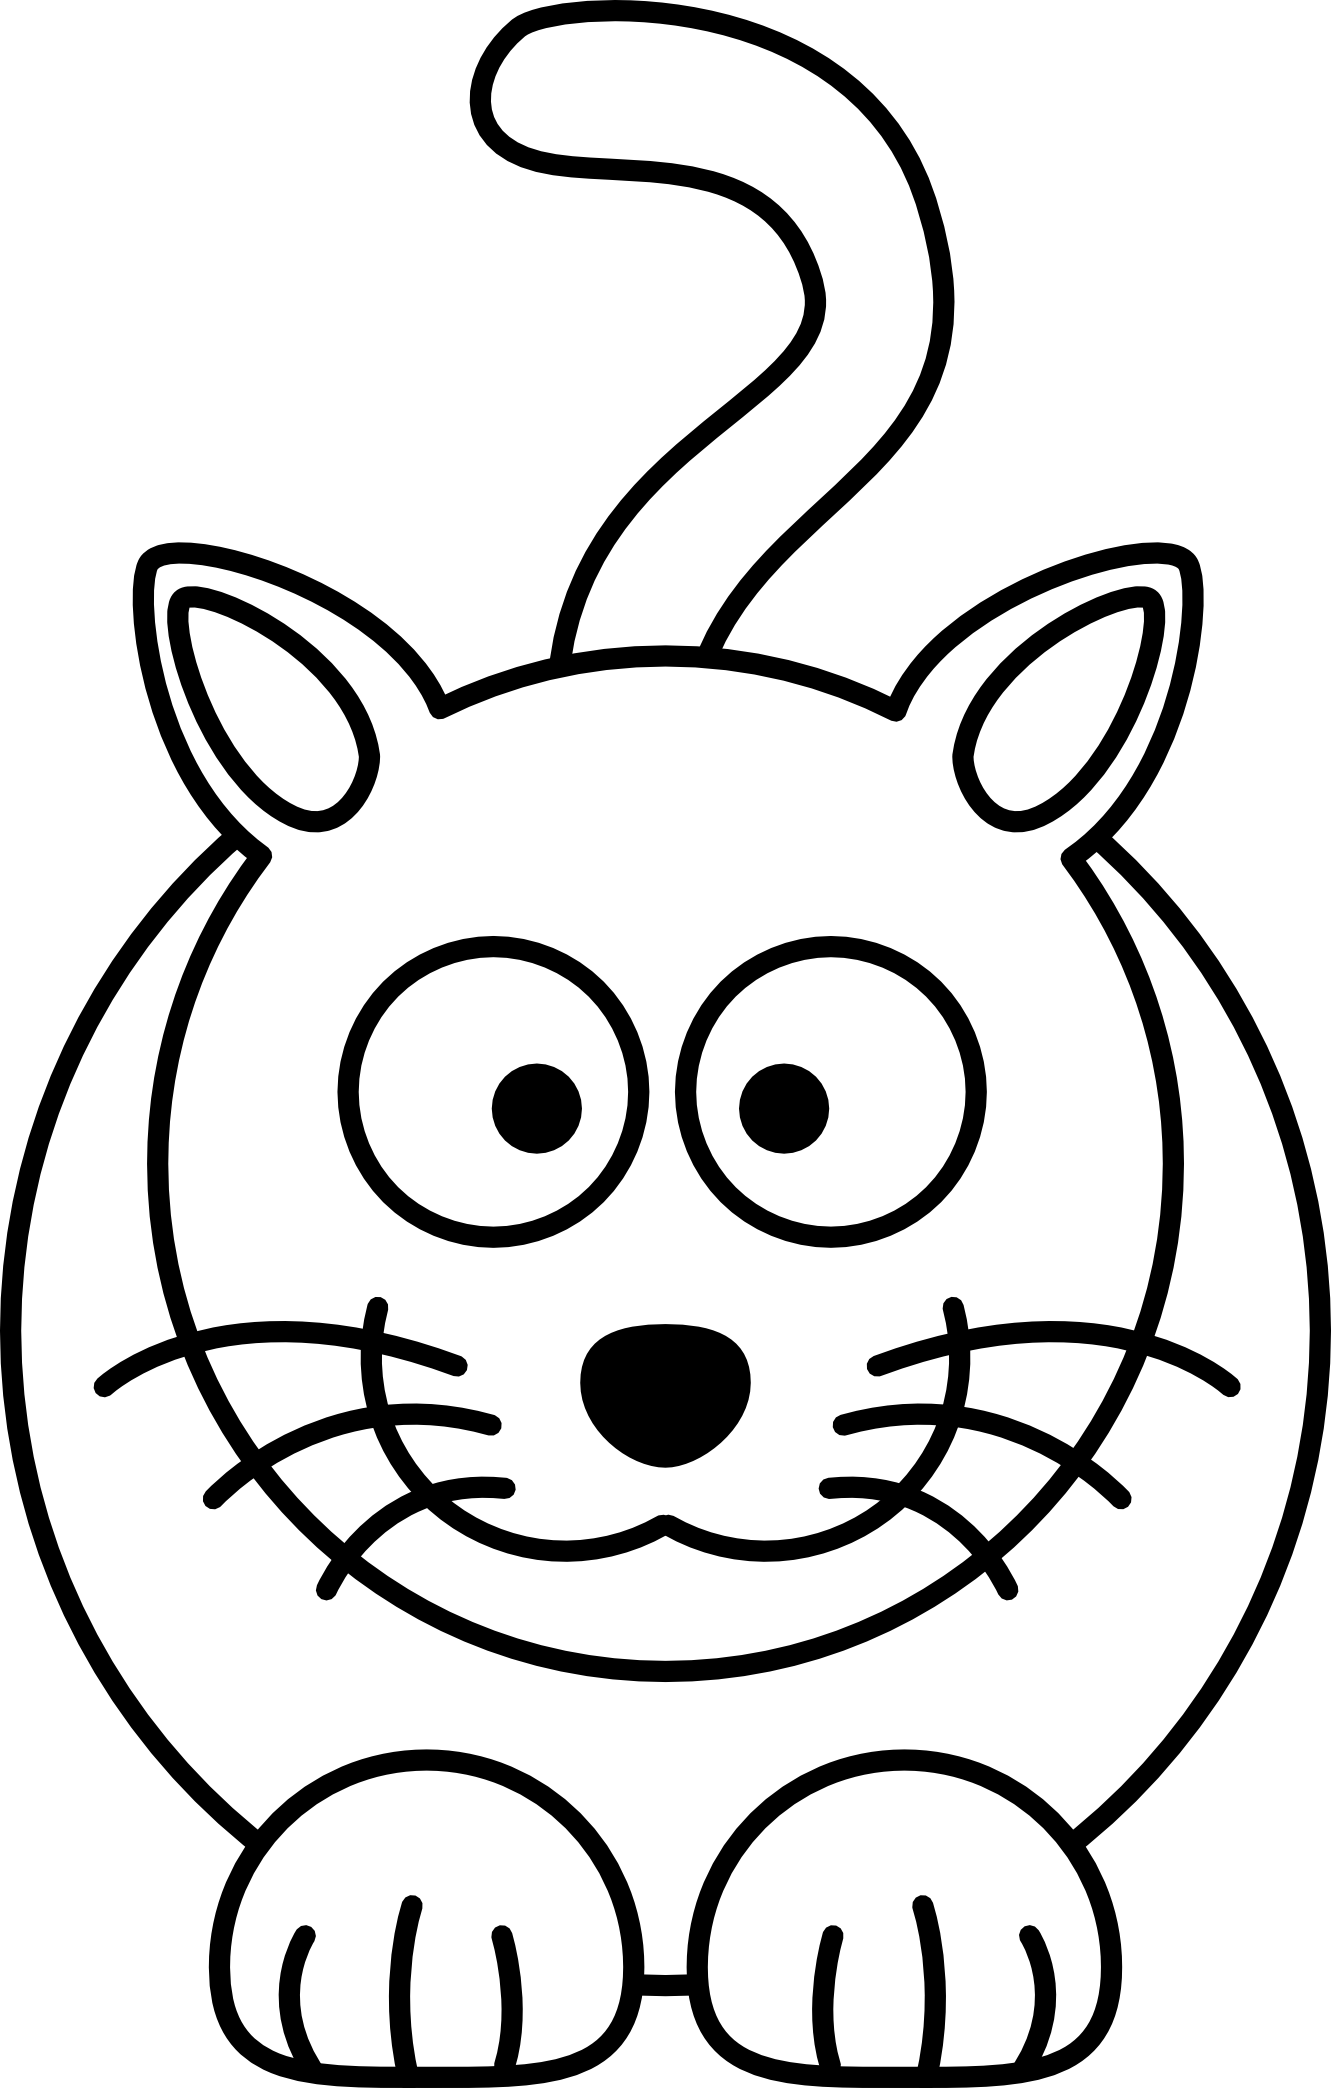 lemmling cartoon cat black white line art coloring book colouring drawing - Drawing Pictures For Colouring